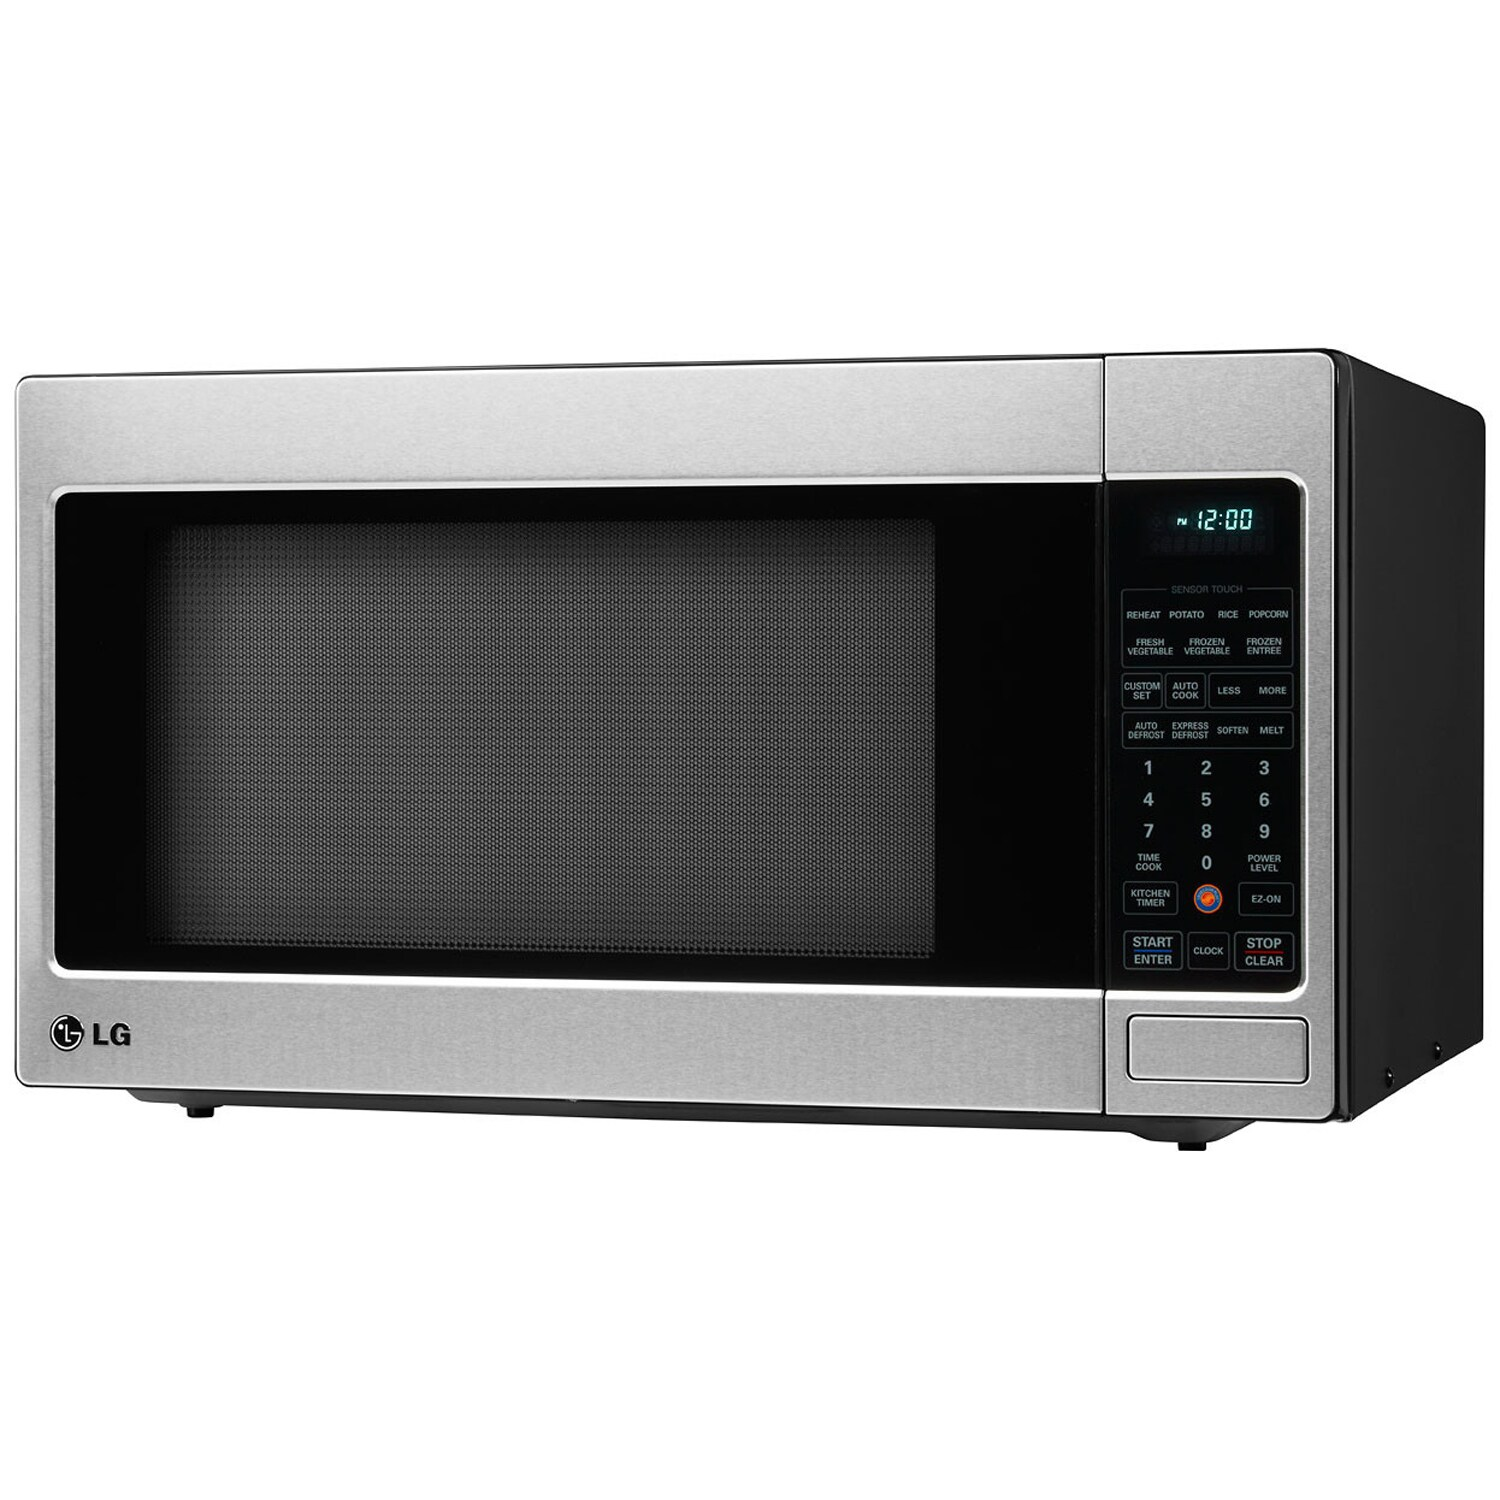 lg at richard microwave countertop z p appliances housewares steel microwaves stainless category n c son ft kitchen